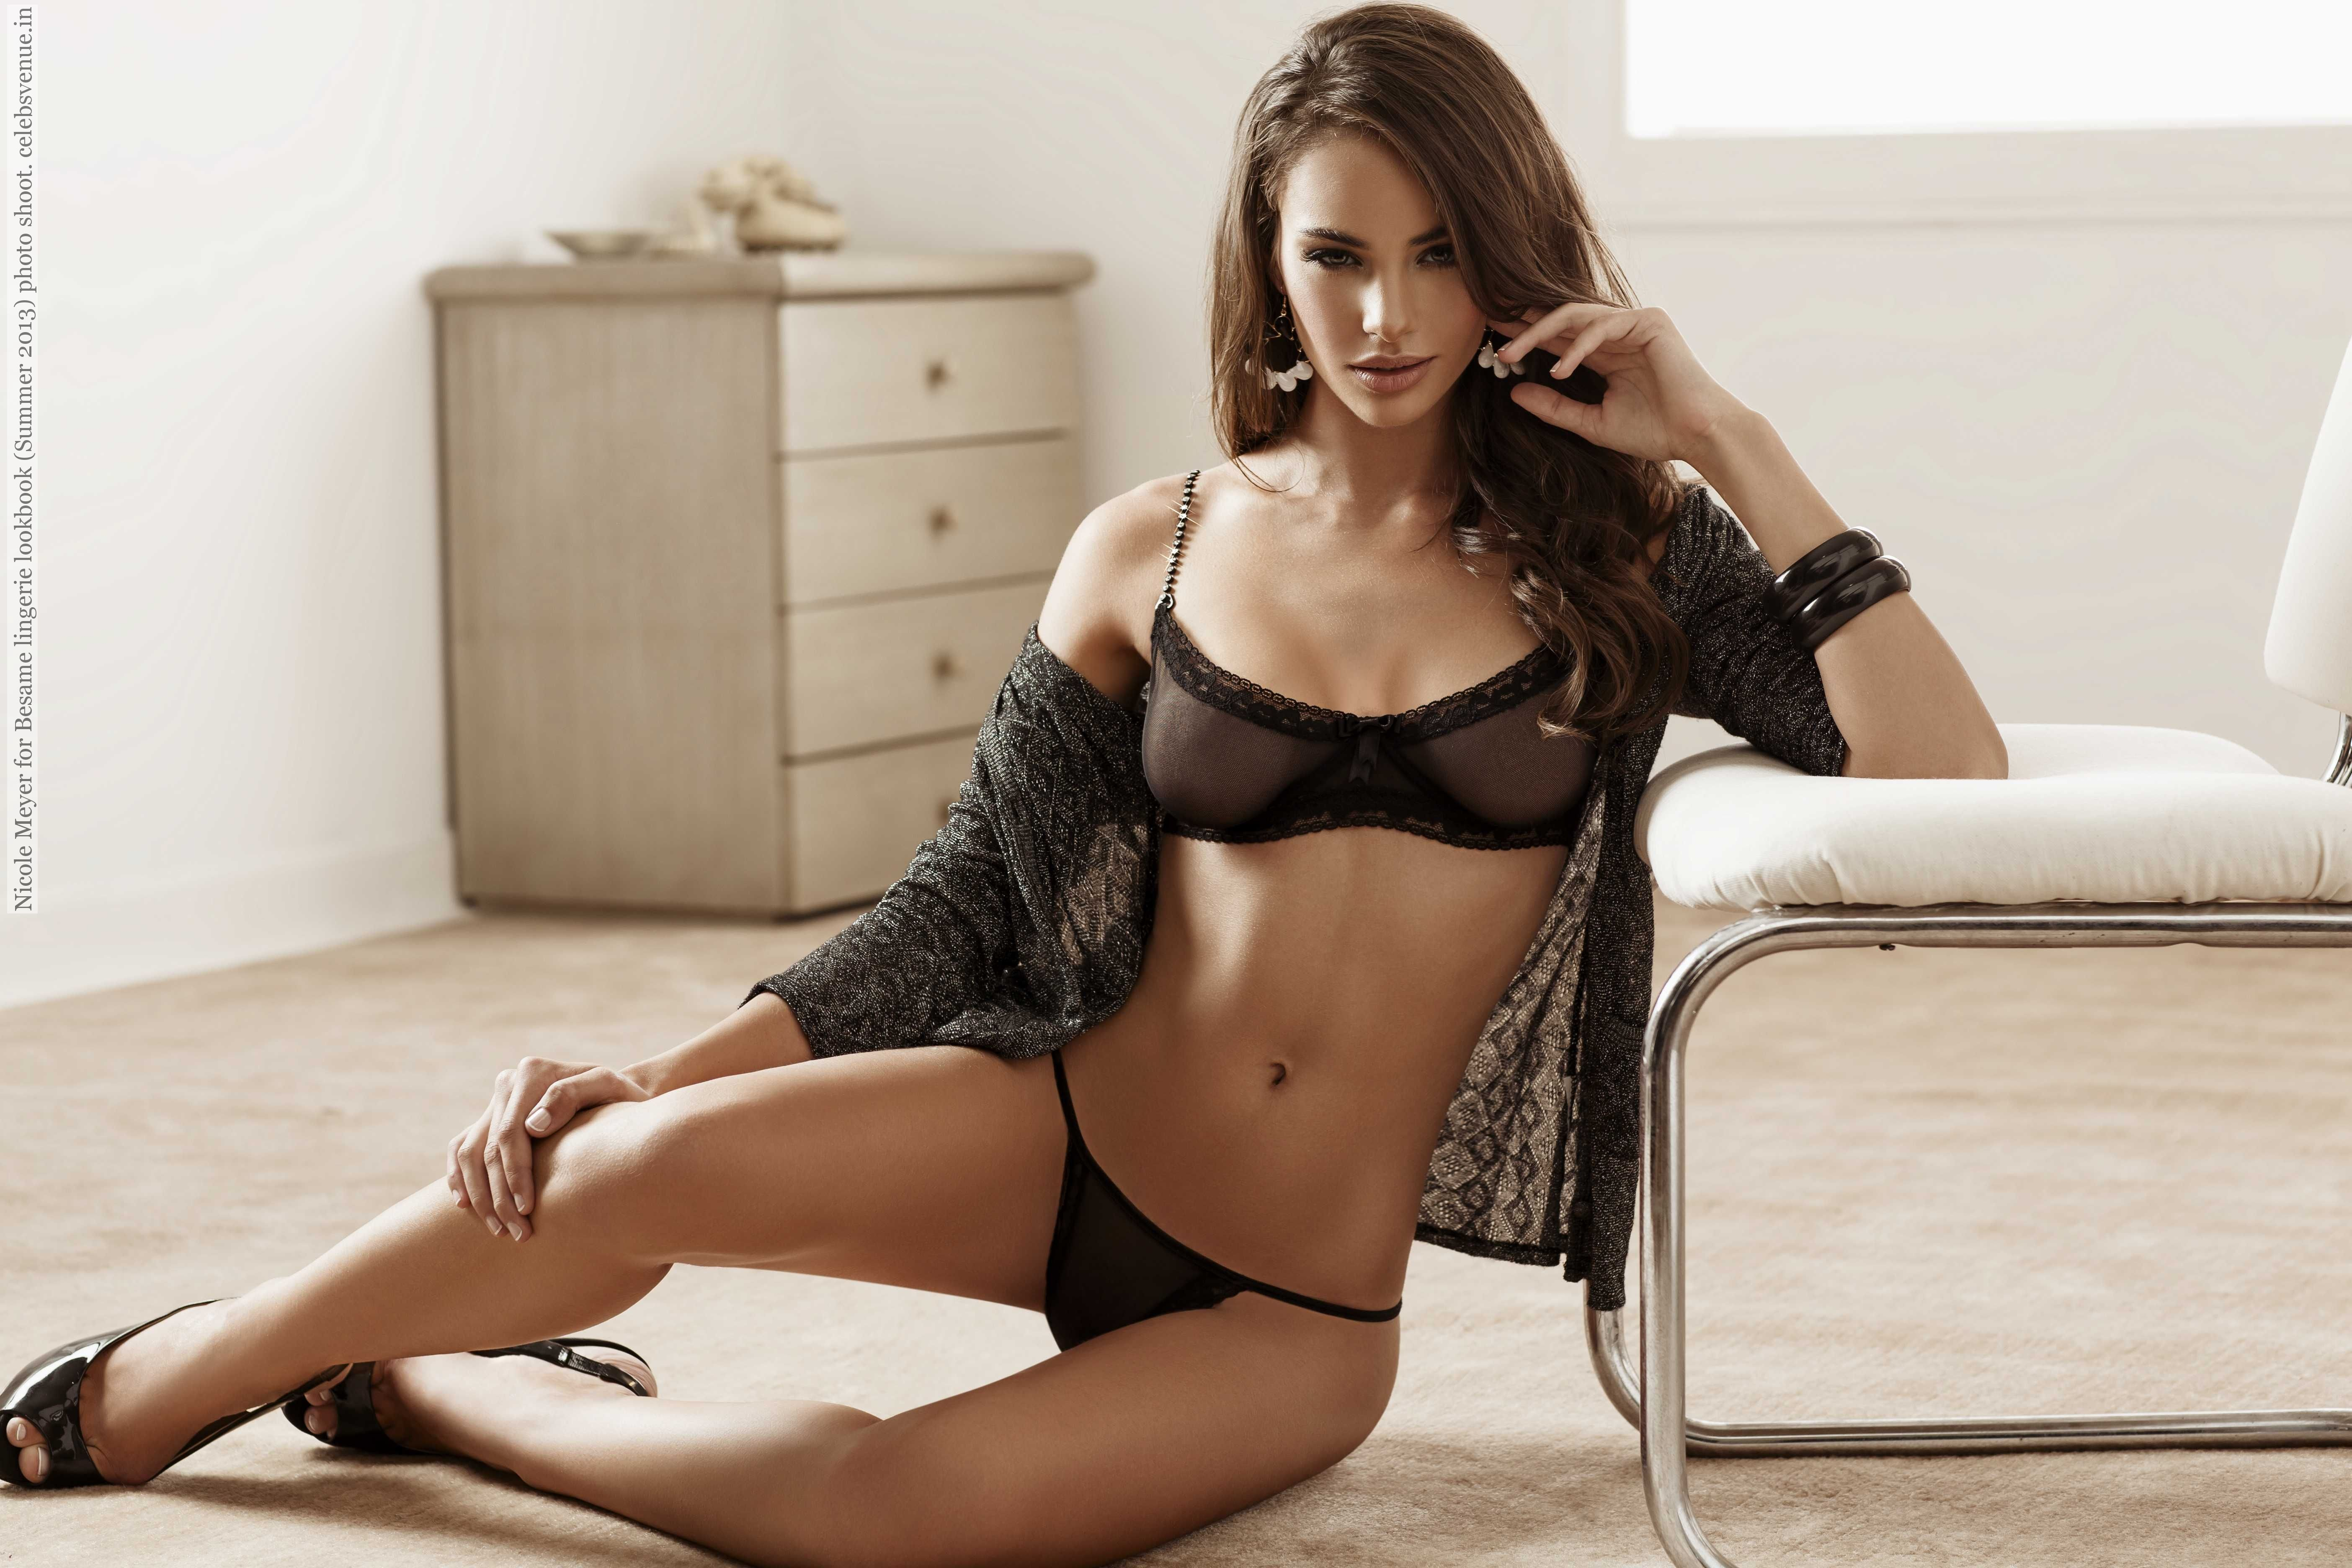 Forum on this topic: Besame Lingerie Summer 2012 Collection, besame-lingerie-summer-2012-collection/